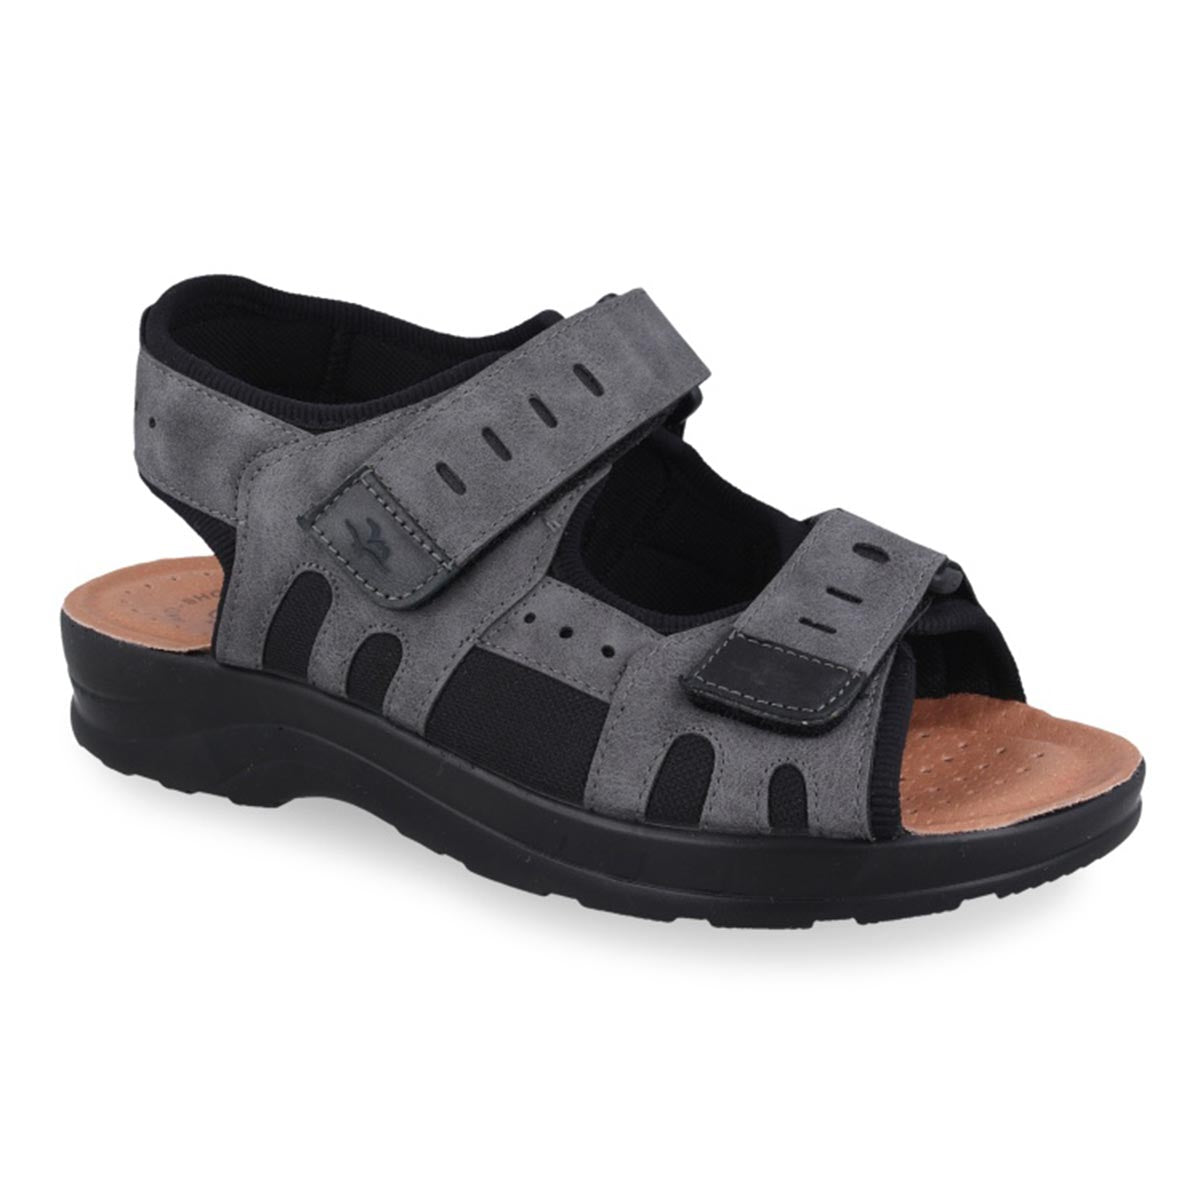 Synthetic Man Sandal Grey (S5037cb)